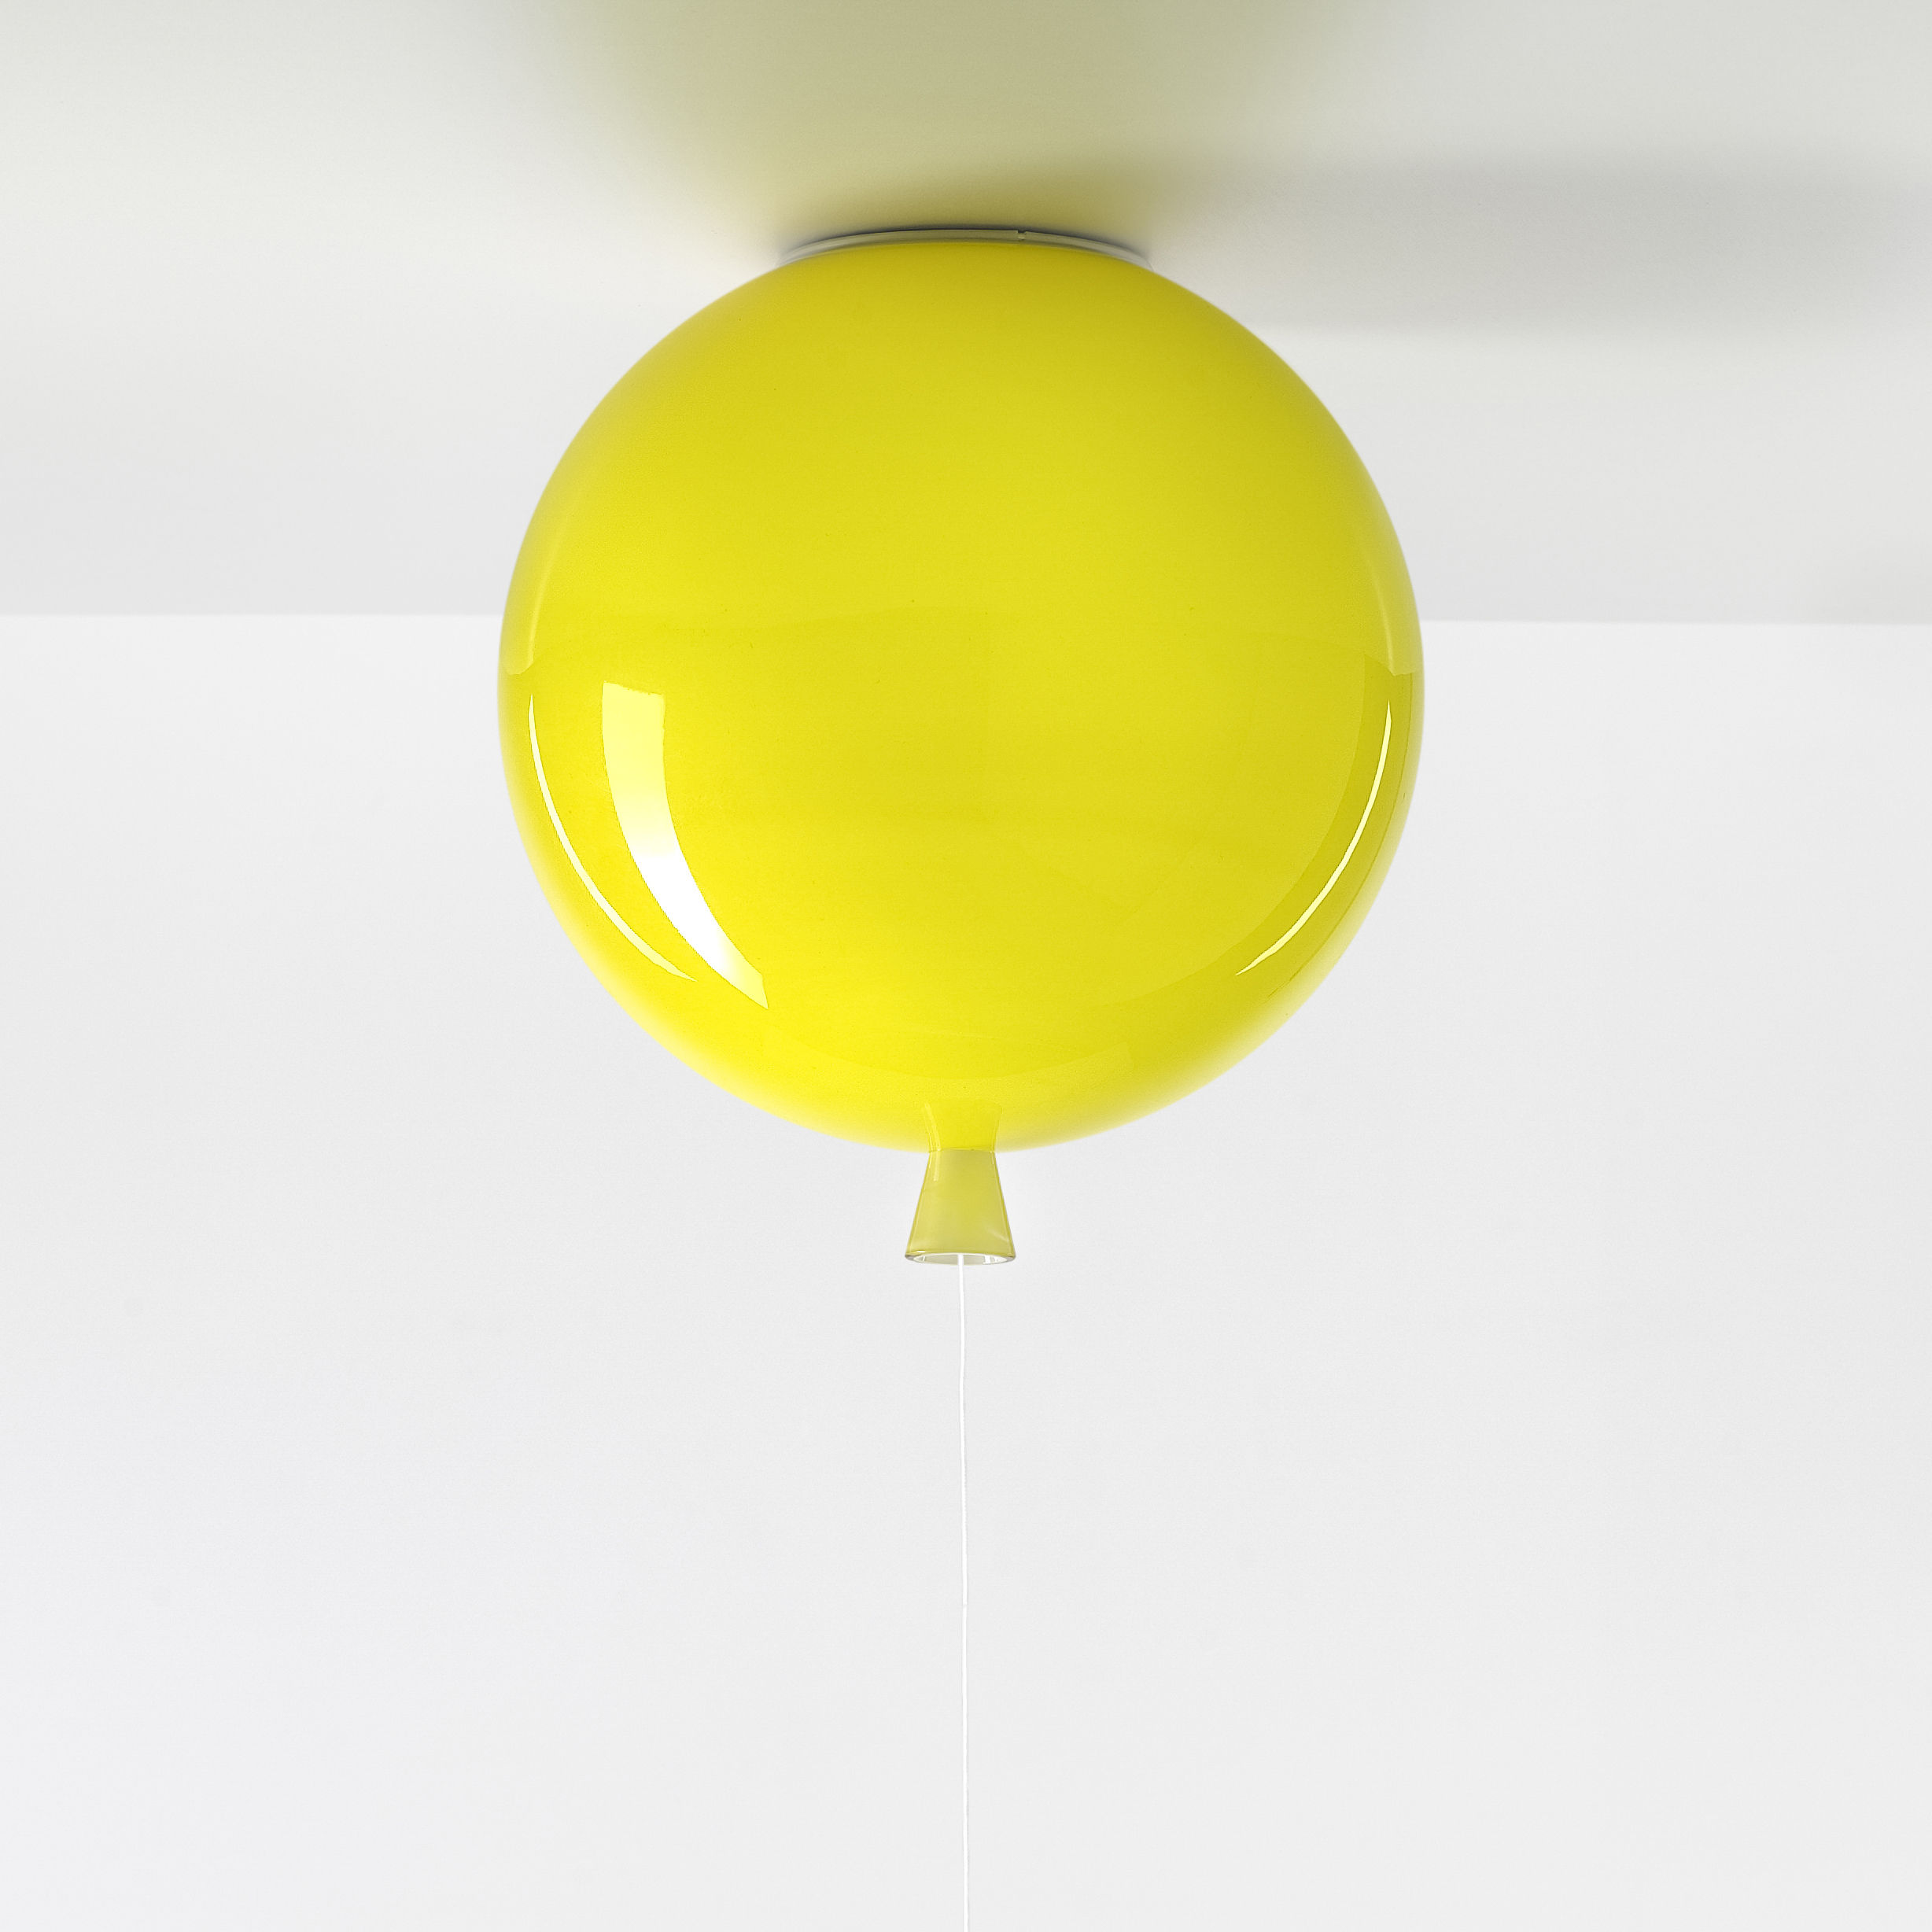 Decoration - Children's Home Accessories - Memory Medium Ceiling light - / Ø 30 cm - Glass by Brokis - Yellow - Mouth blown glass